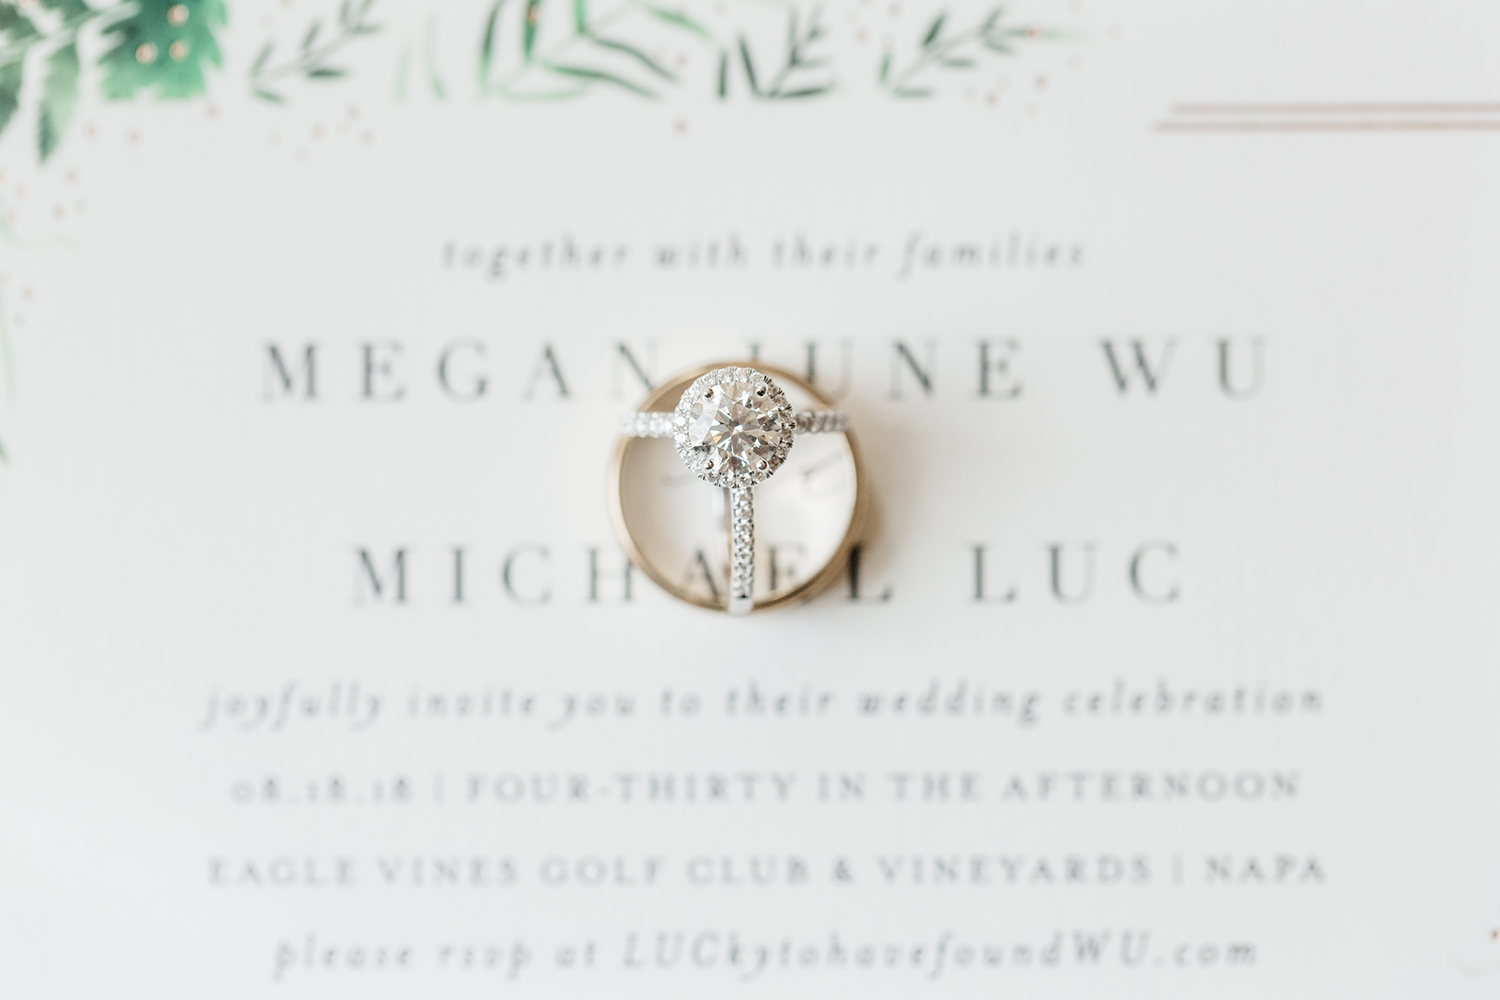 wedding photography of invitation and rings from a wedding at eagle vines golf club in napa california